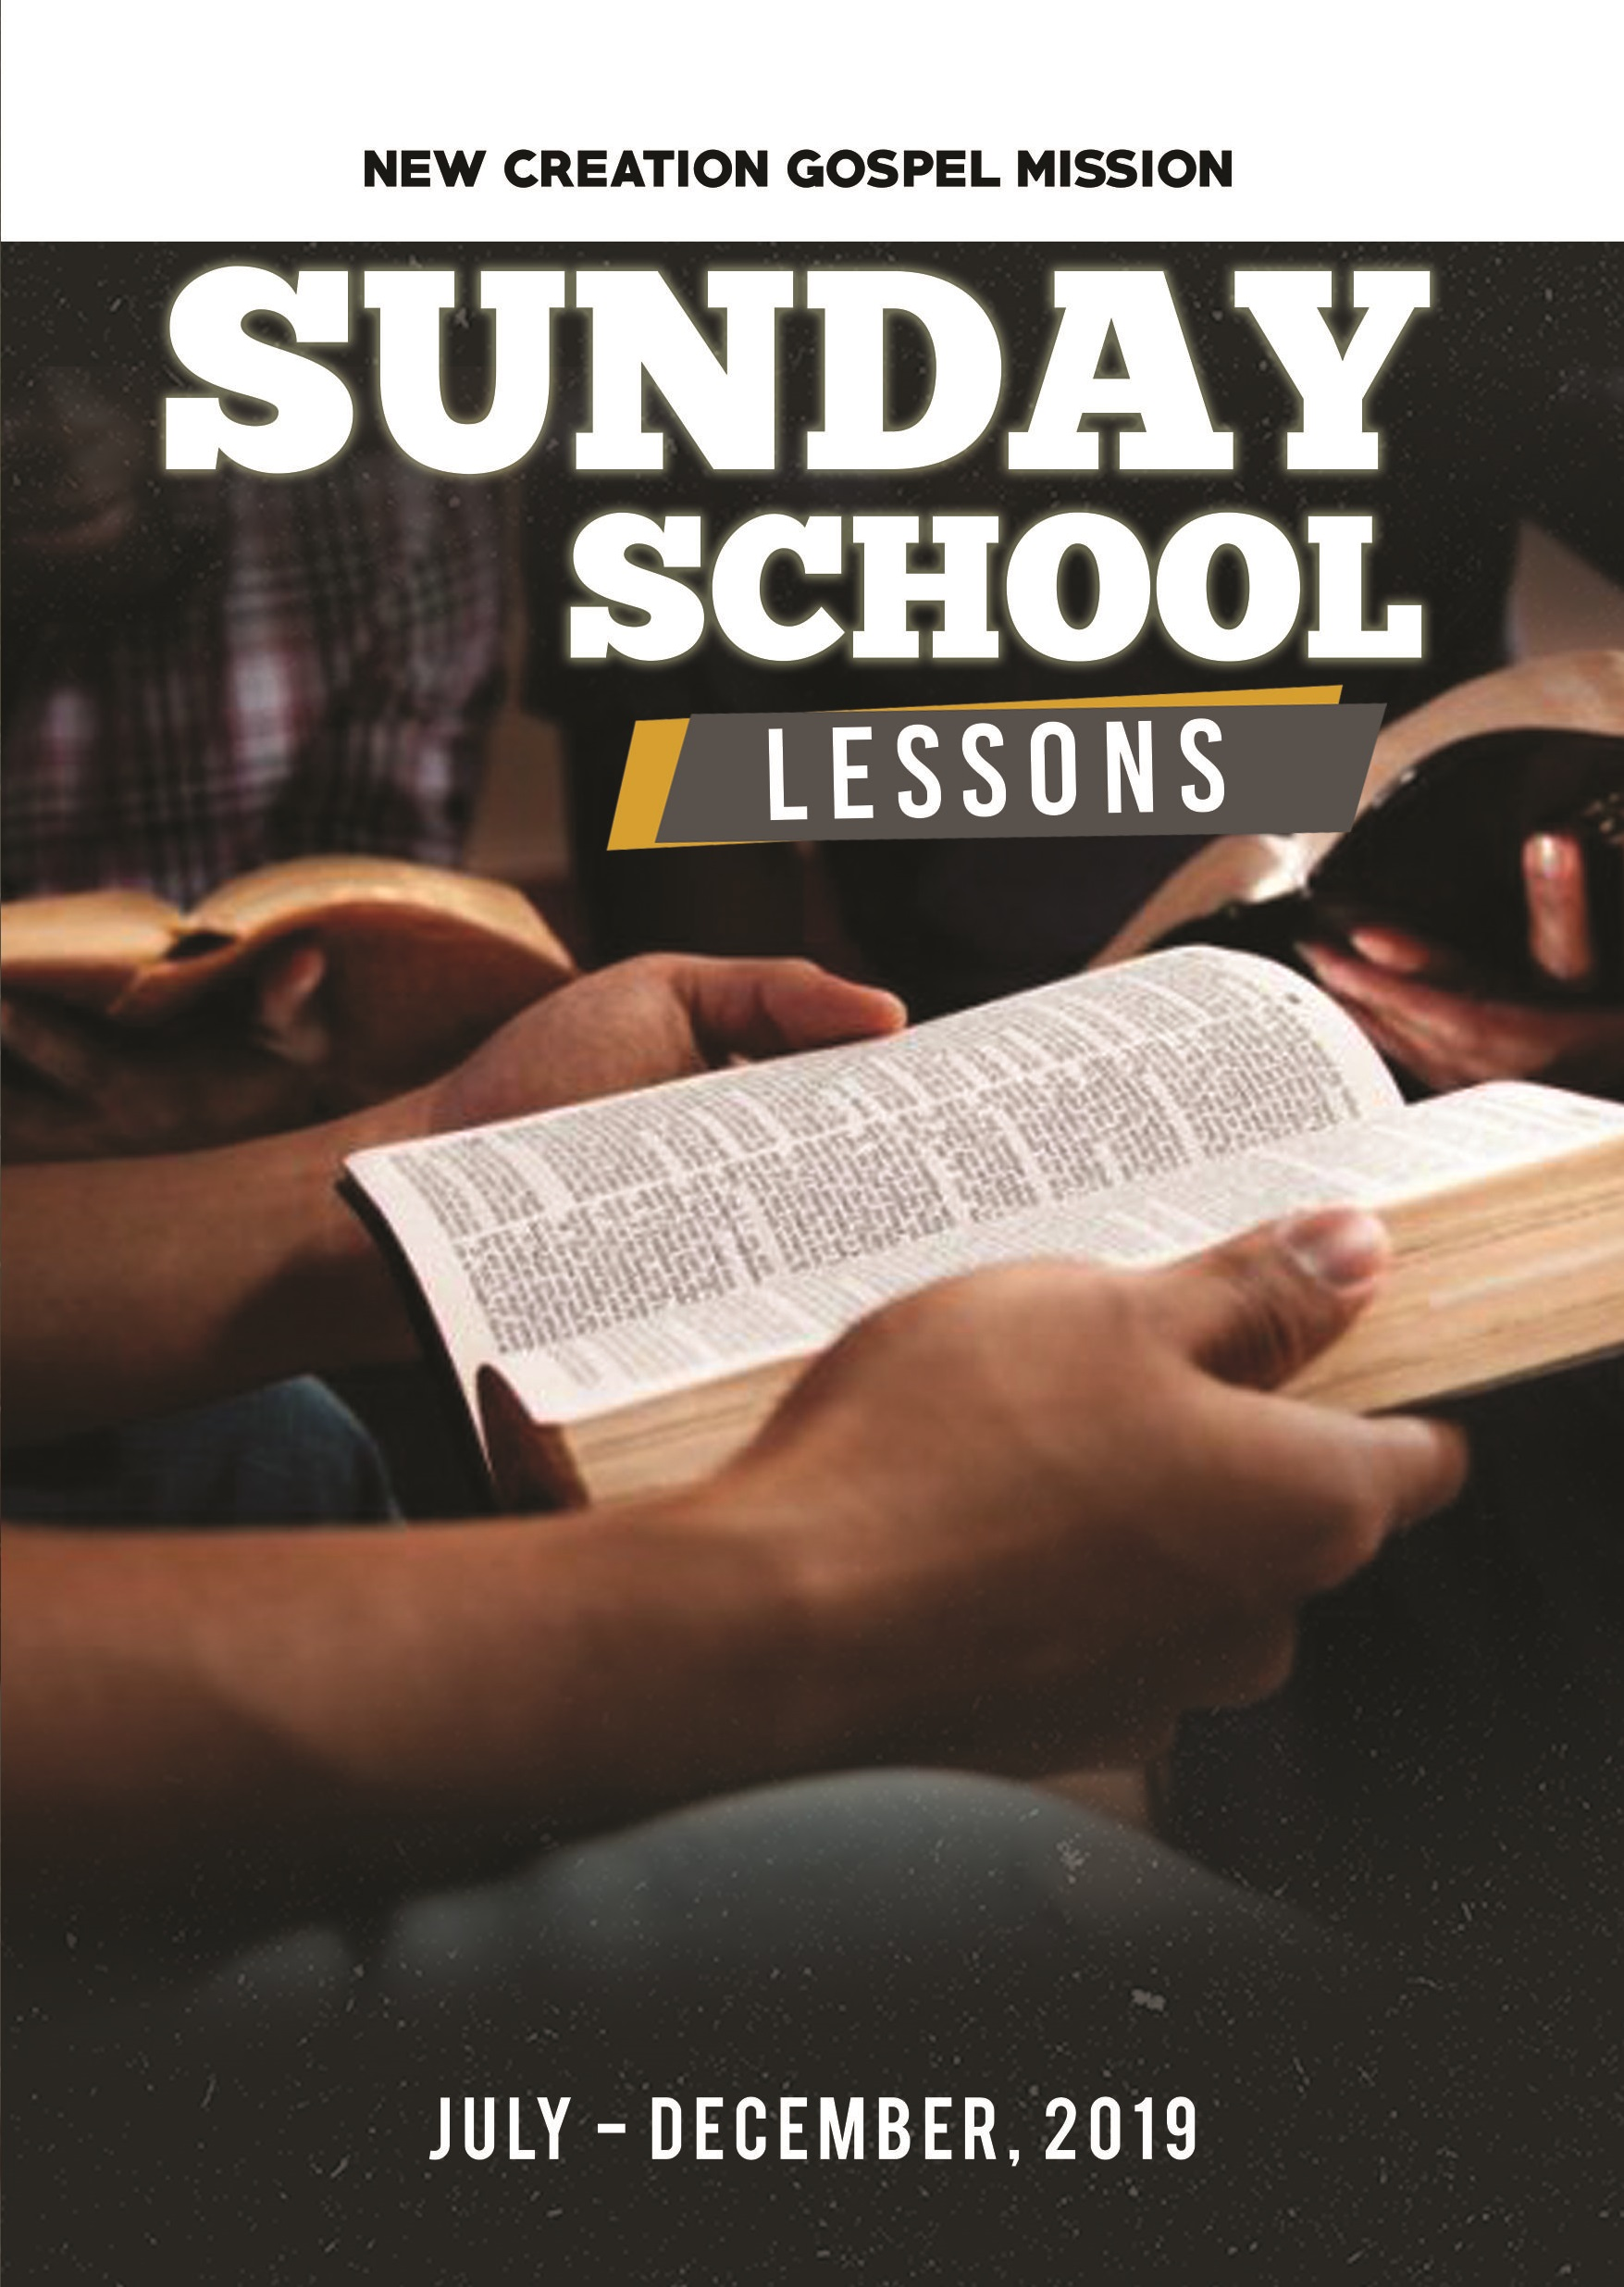 Sunday School Lessons, an Ebook by New Creation Gospel Mission